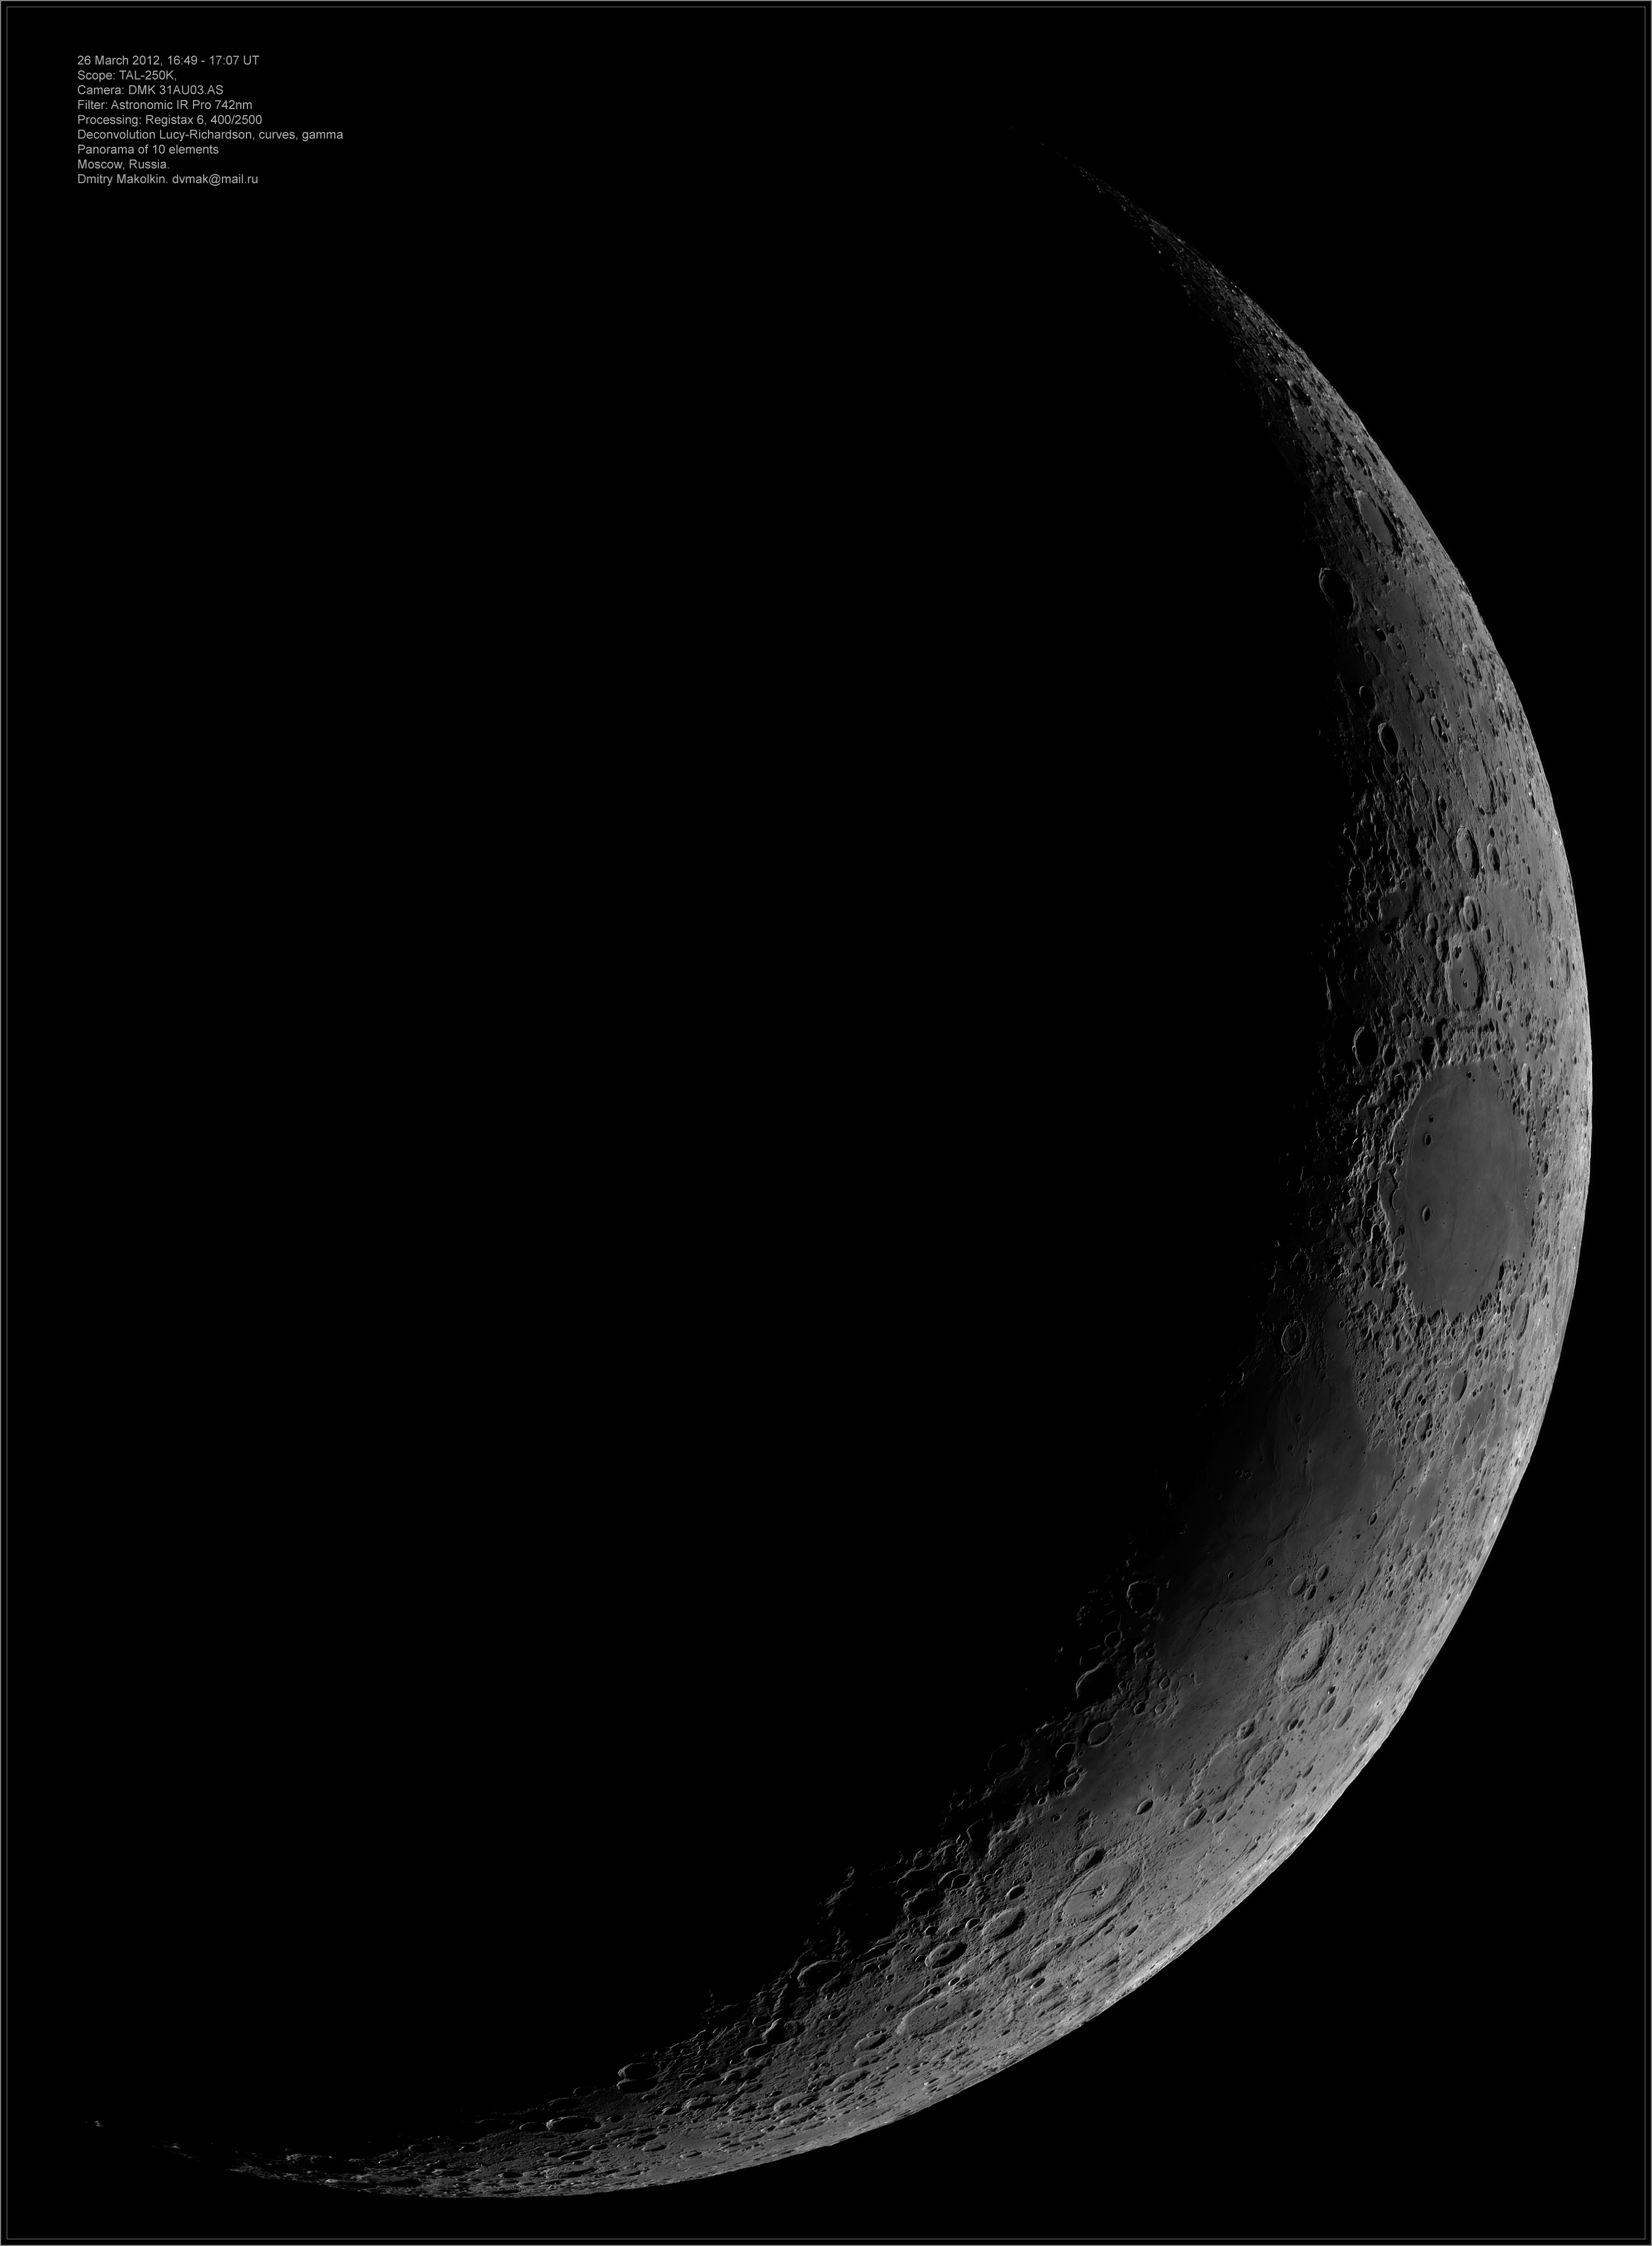 Moon image 25 March 2012